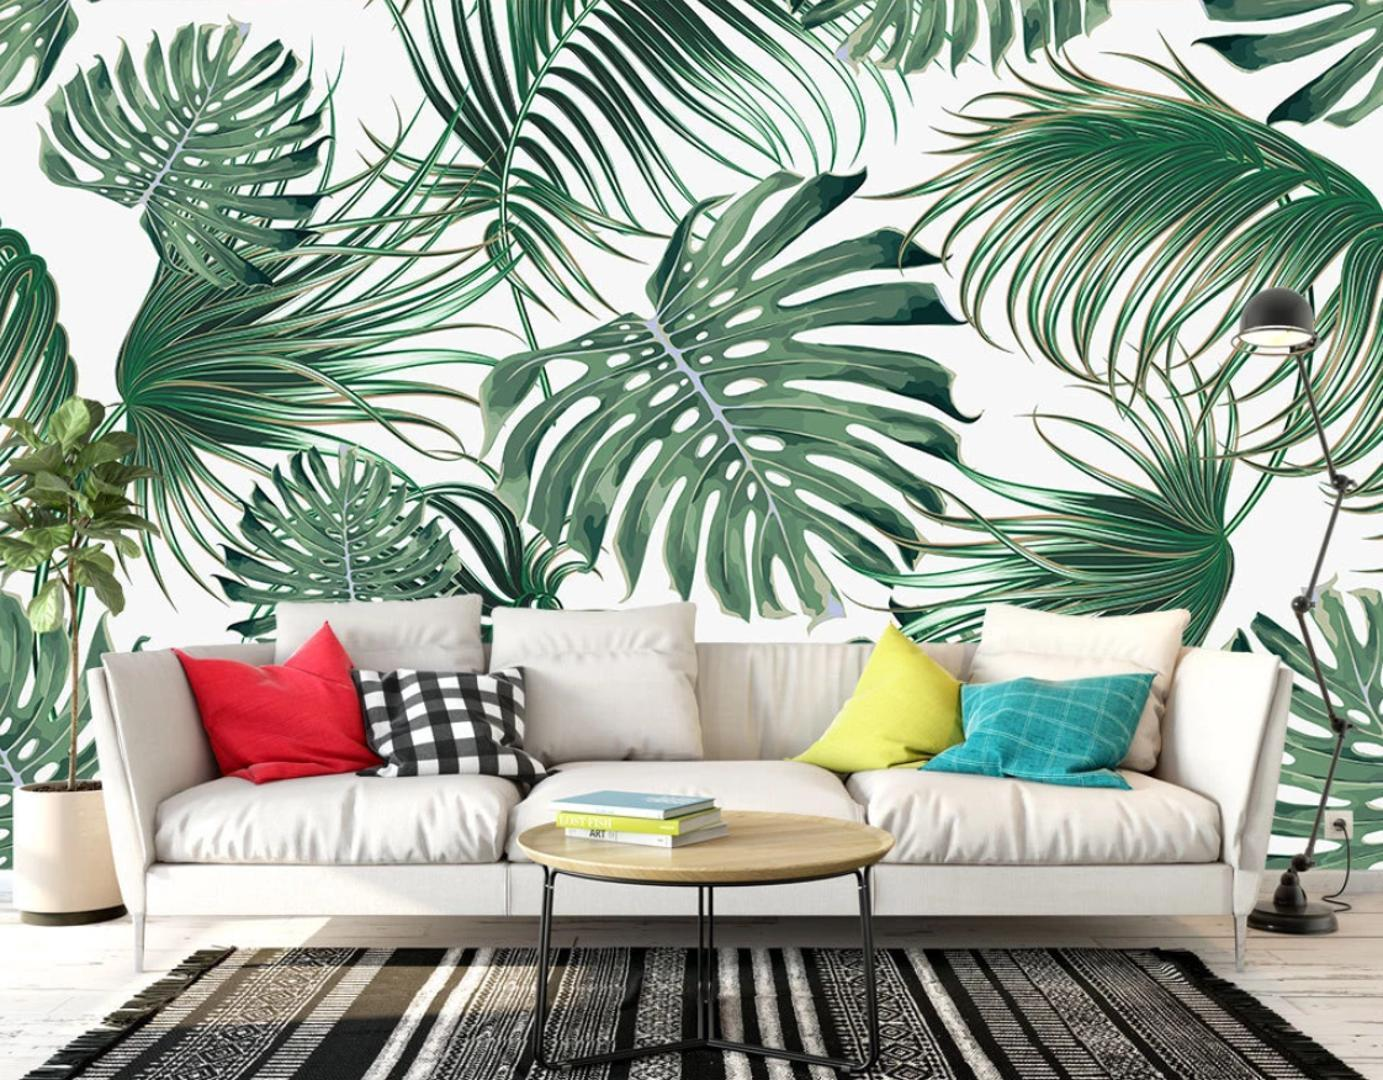 Tropical Leaves Wallpaper Wall Mural Photo Wall Papers Art Decor Canvas Contact Paper Home Improvement Cover Wallpapers Hd Wallpapers Hd Background From Hobarte 26 57 Dhgate Com Download all photos and use them even for commercial projects. tropical leaves wallpaper wall mural